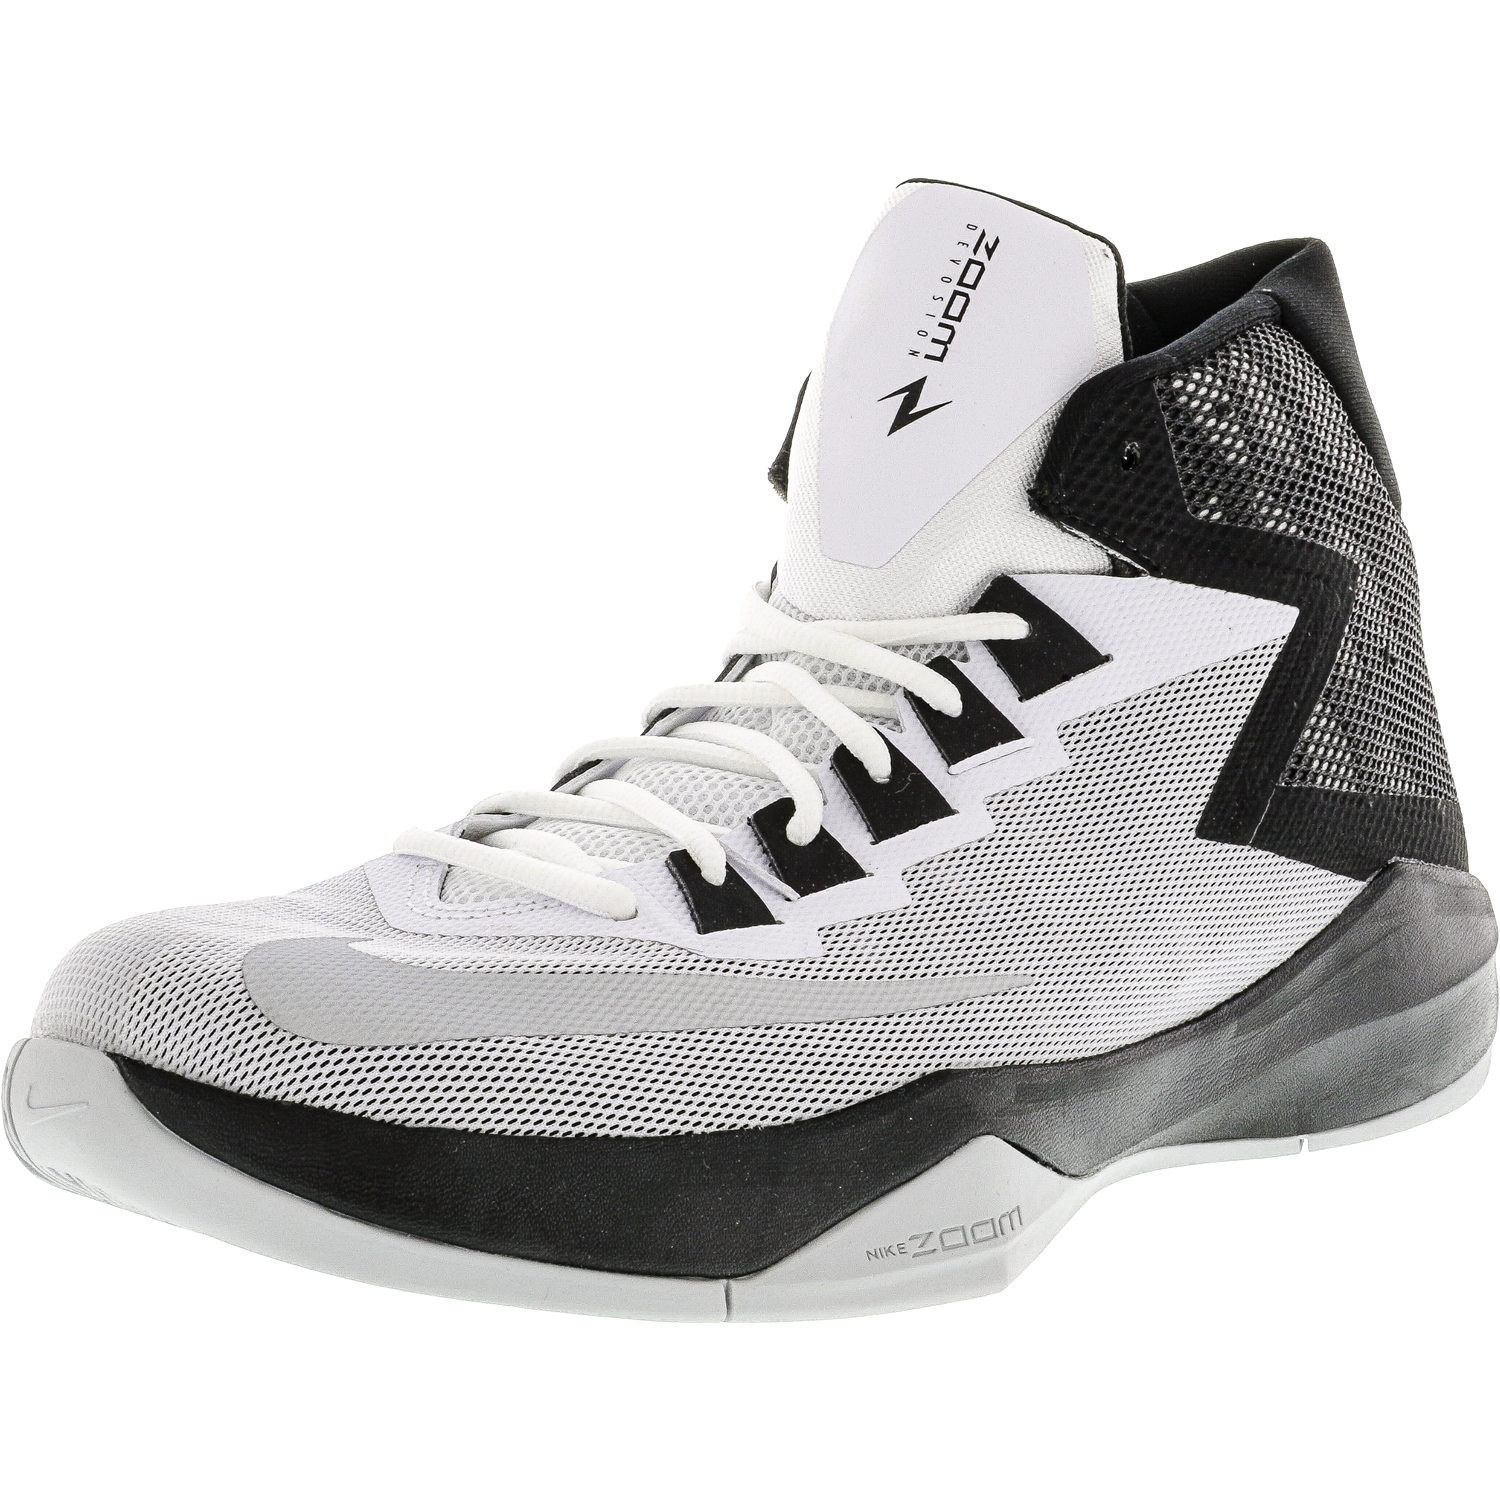 the latest 0bbfa 85244 ... release date nike nike mens zoom devosion white metallic silver black  high top basketball shoe 12m